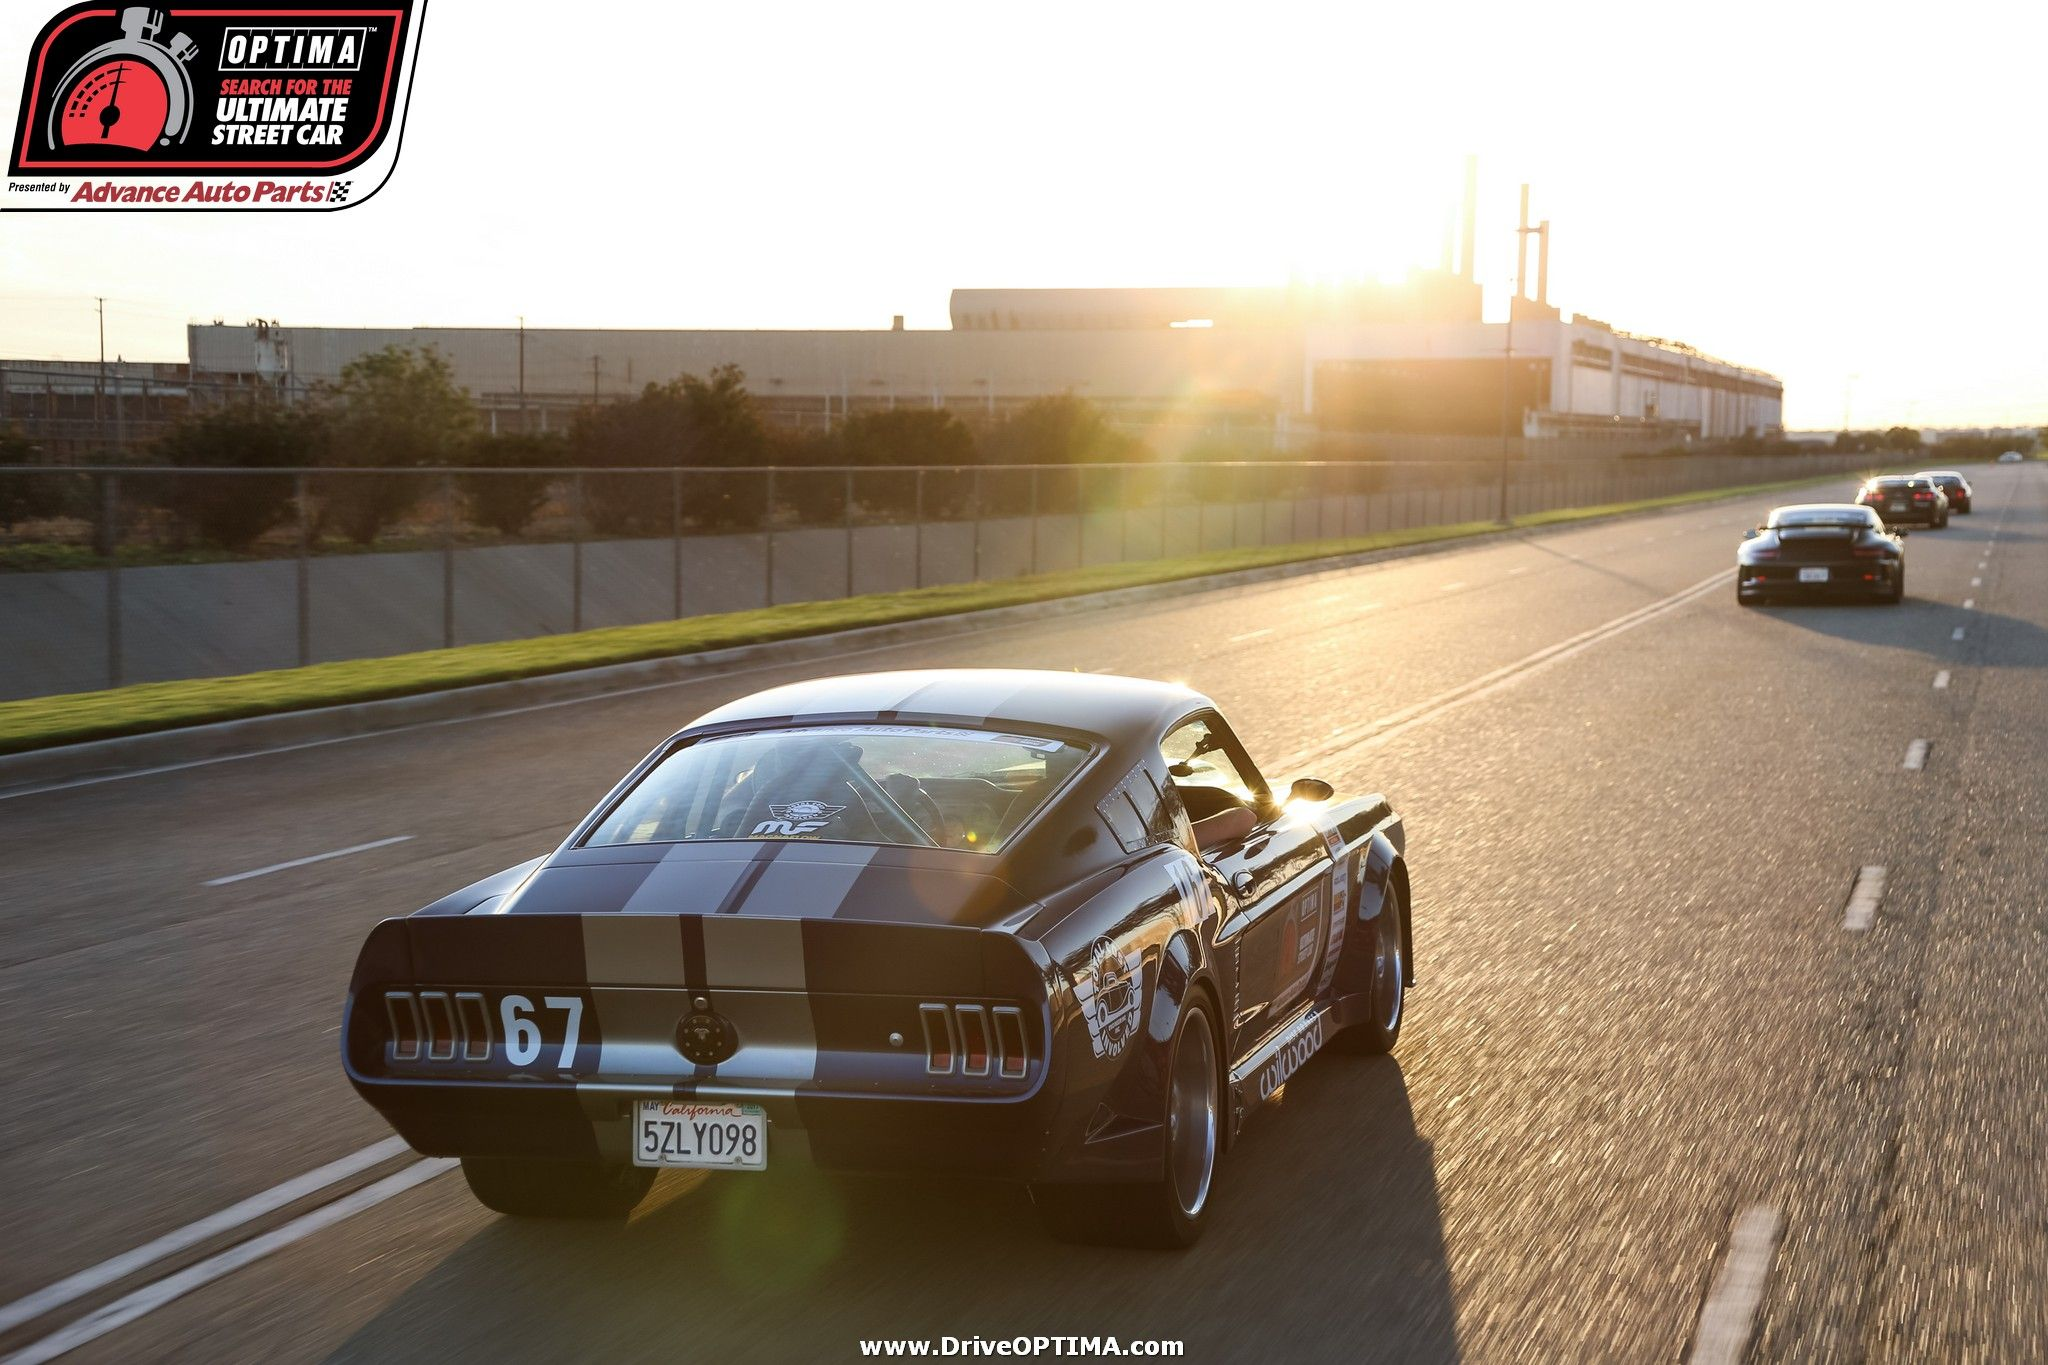 Ed Moss 1967 Ford Mustang Can Use Optima Batteries In Several Diffe Group Sizes